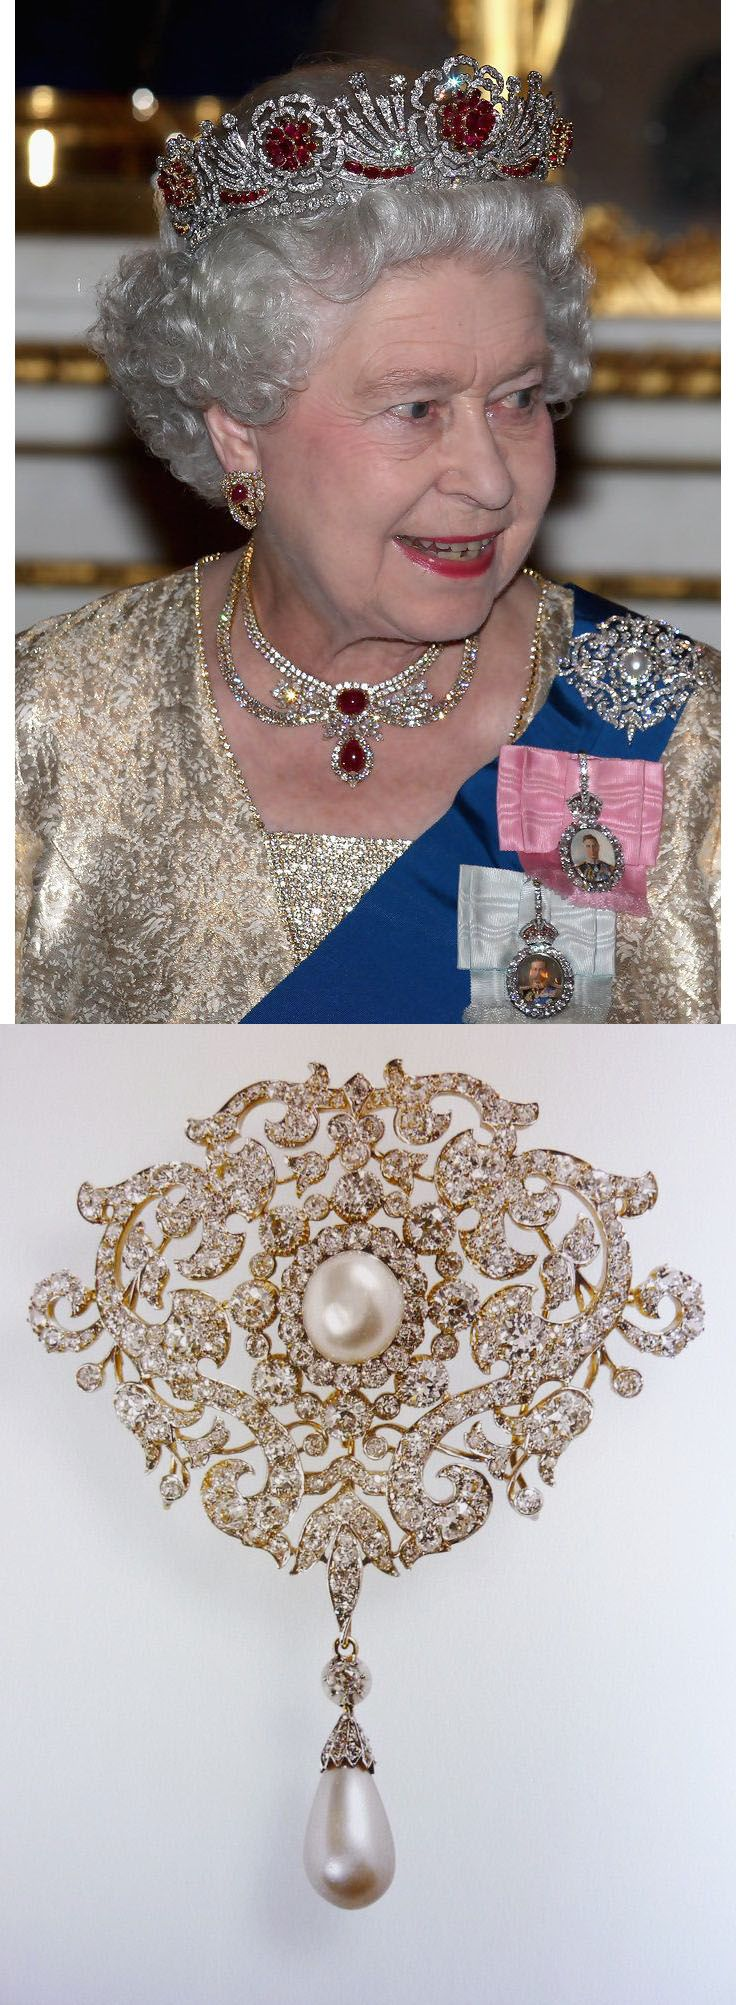 The Richmond Brooch. A present from the town of Richmond for her 1893 wedding to the future King George V, Queen Mary's Richmond Brooch is a large piece made from diamonds set in silver and gold in a scrolling design surrounding a central pearl, with a pearl and diamond pendant hanging below. The central pearl and pearl pendant are detachable more pendants can be added, the whole brooch can be used as a pendant. The Queen inherited the brooch when Queen Mary died in 1953.